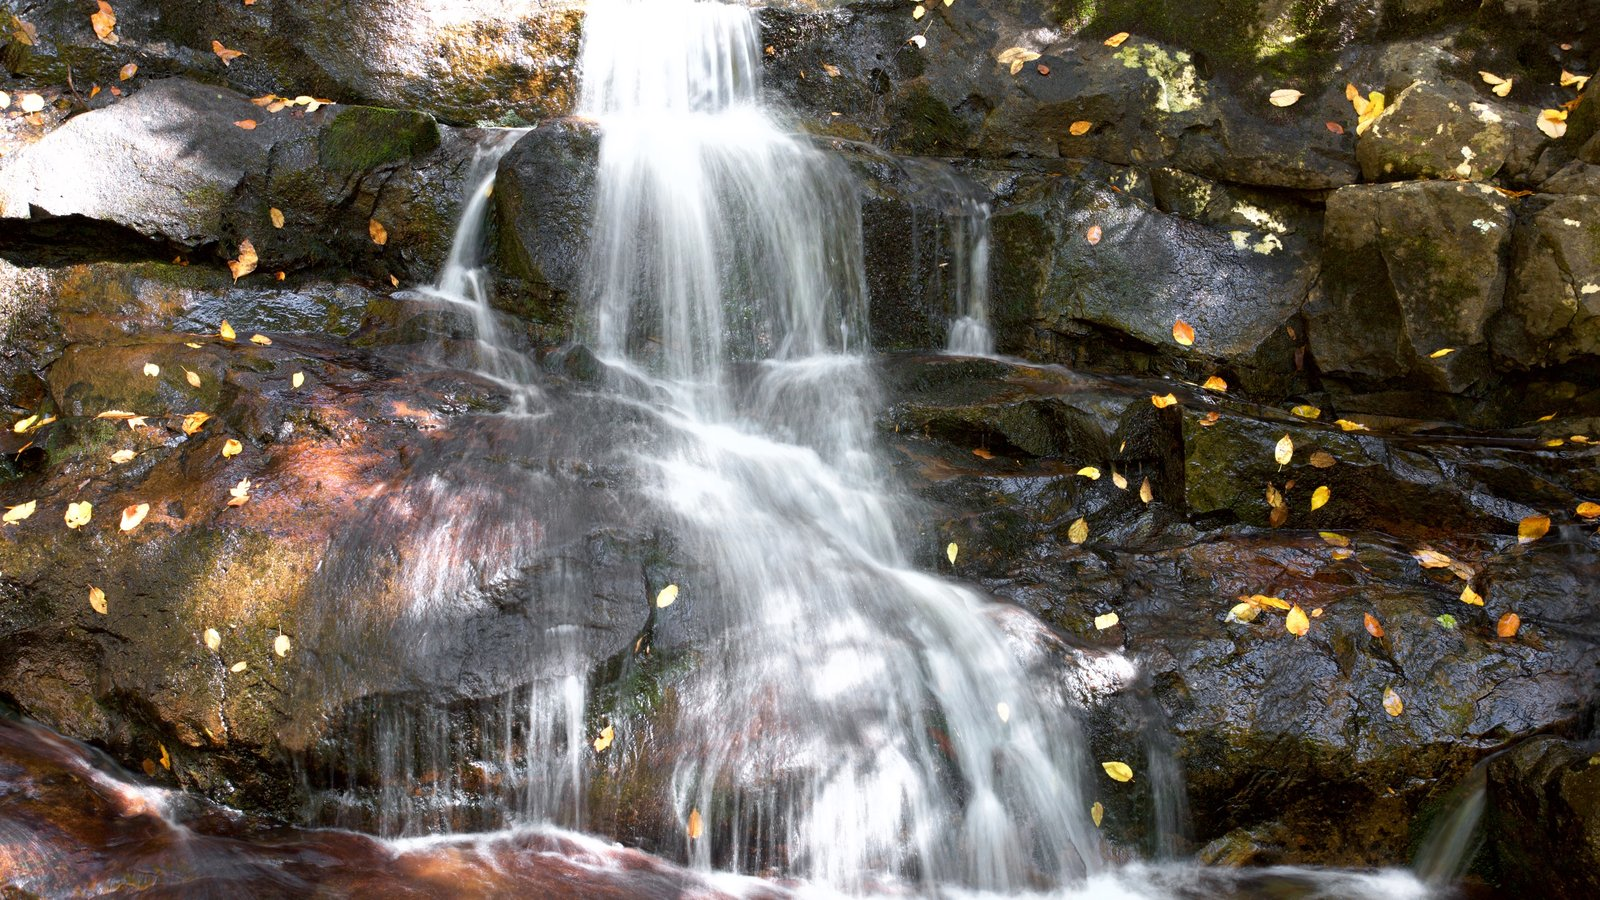 Waterfall pictures view images of gatlinburg pigeon forge laurel falls featuring a cascade publicscrutiny Gallery